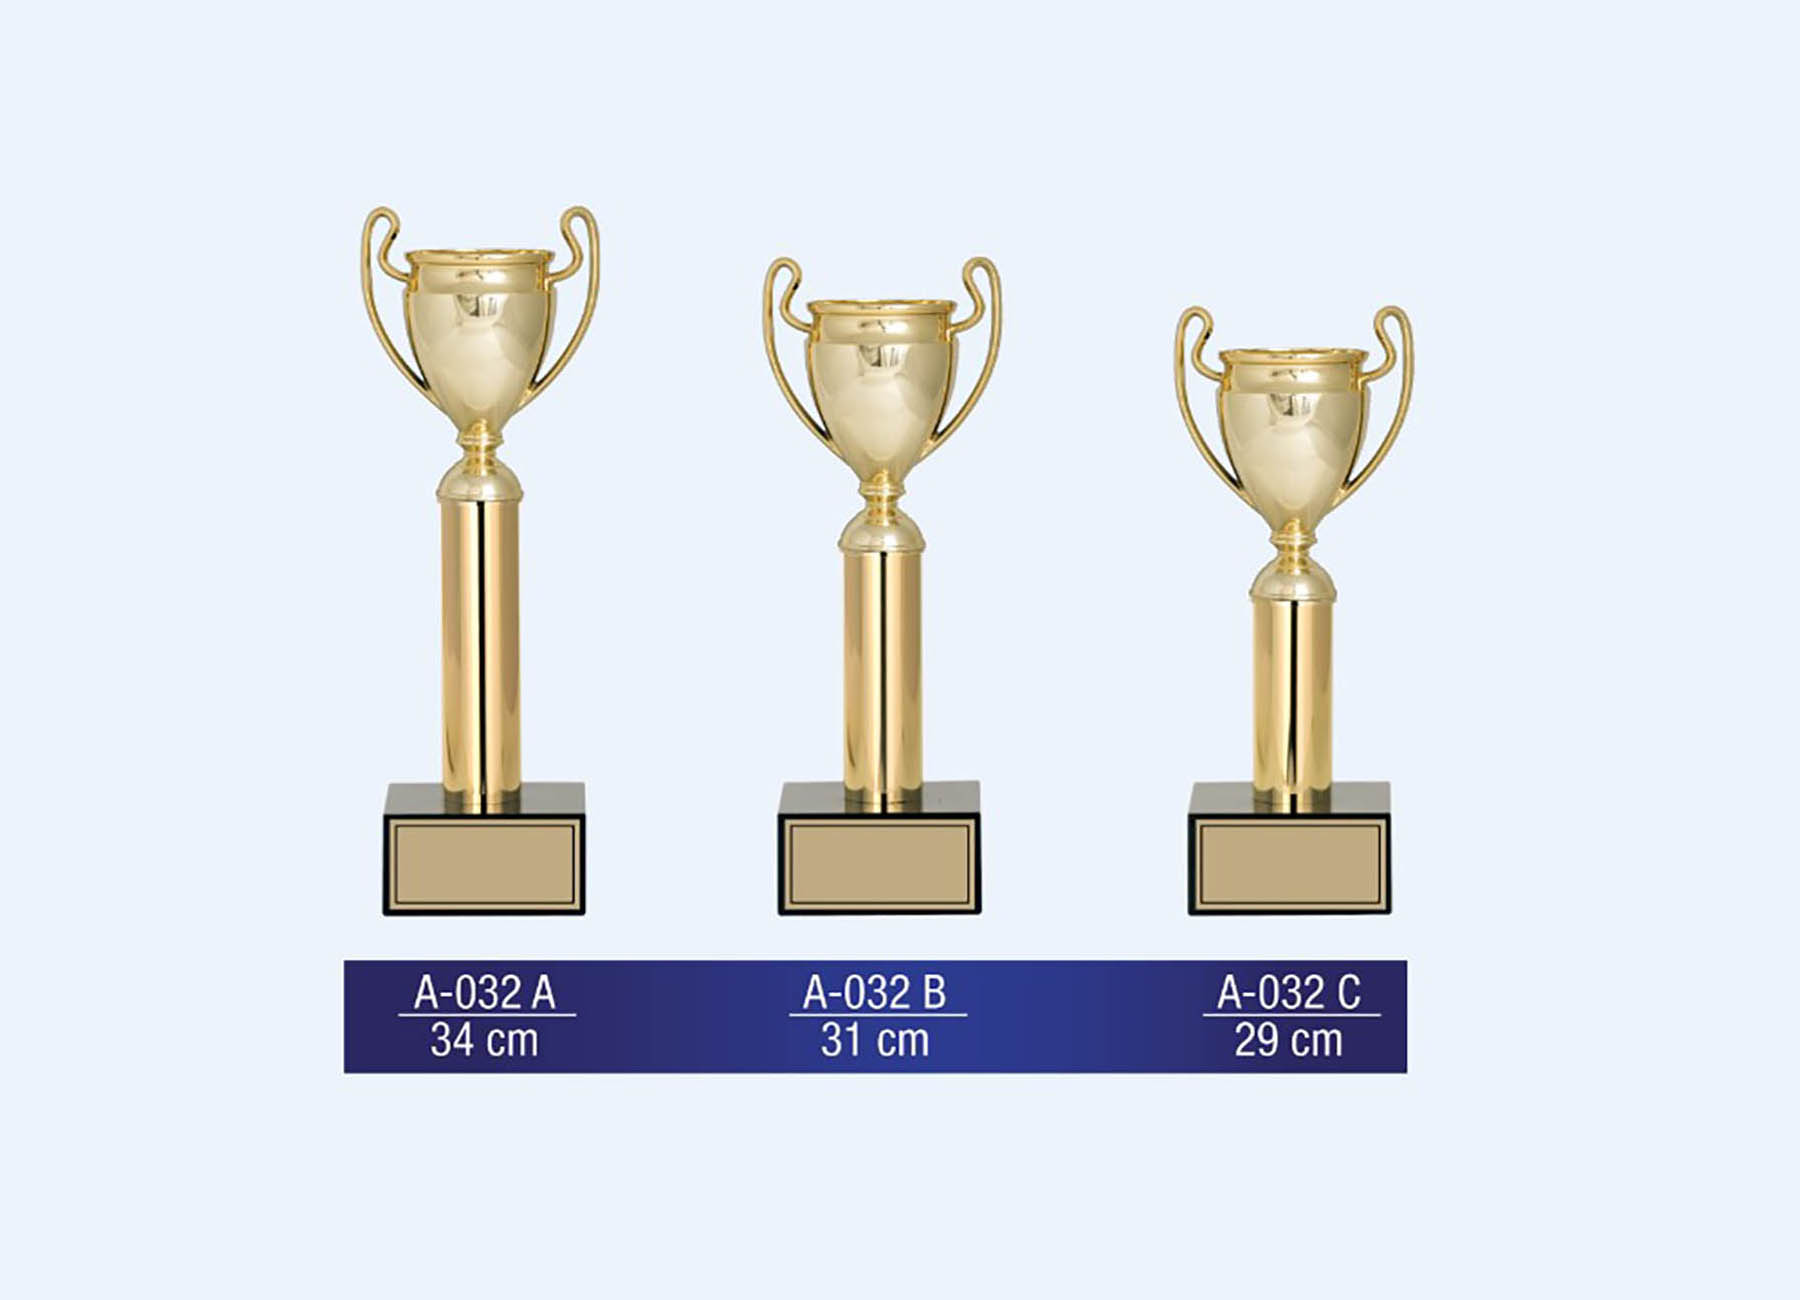 A-032 General Cups